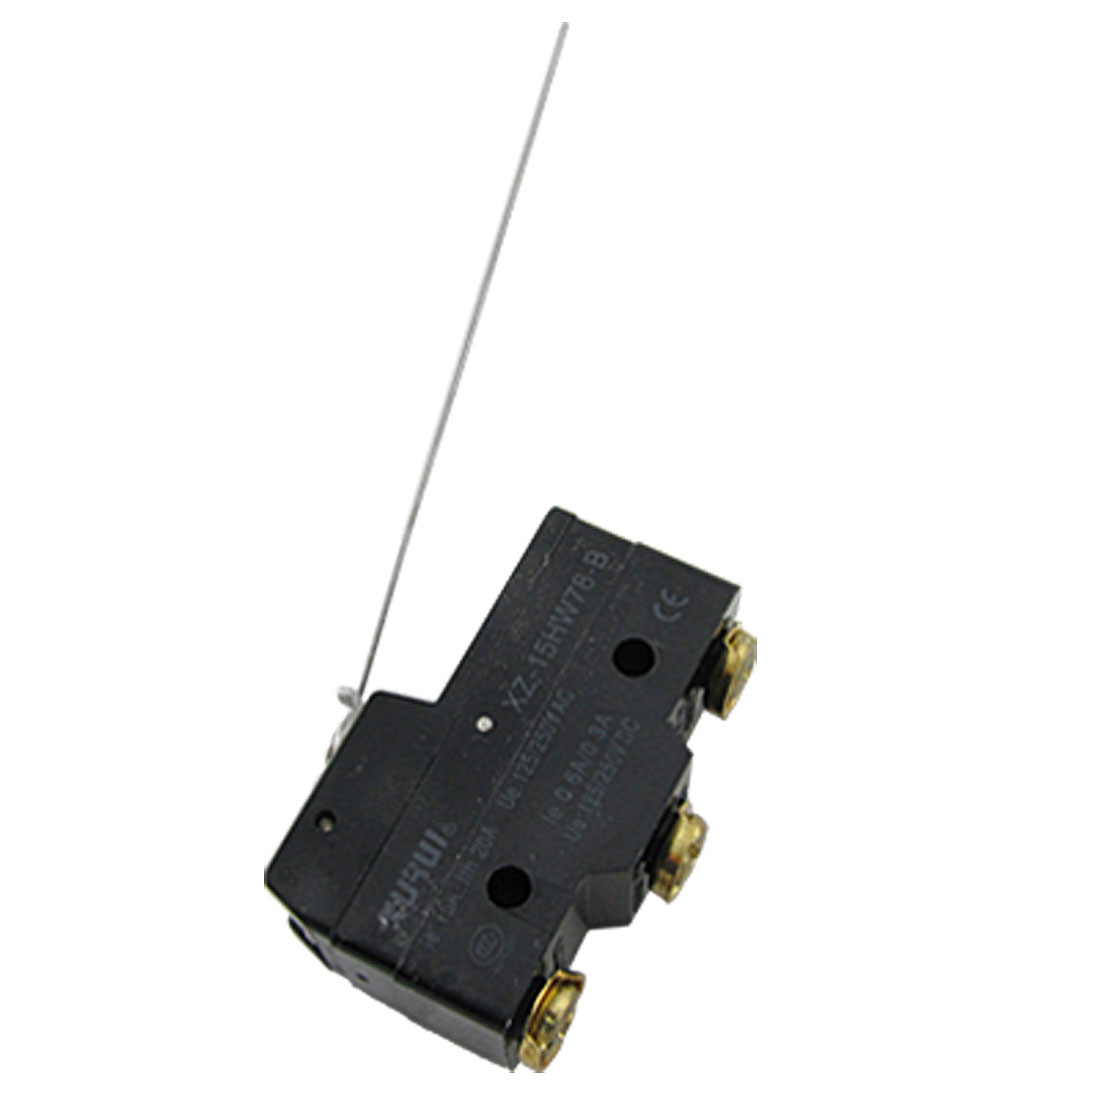 XZ-15HW78-B Long Hinge Lever SPDT Basic Limit Switch Microswitch